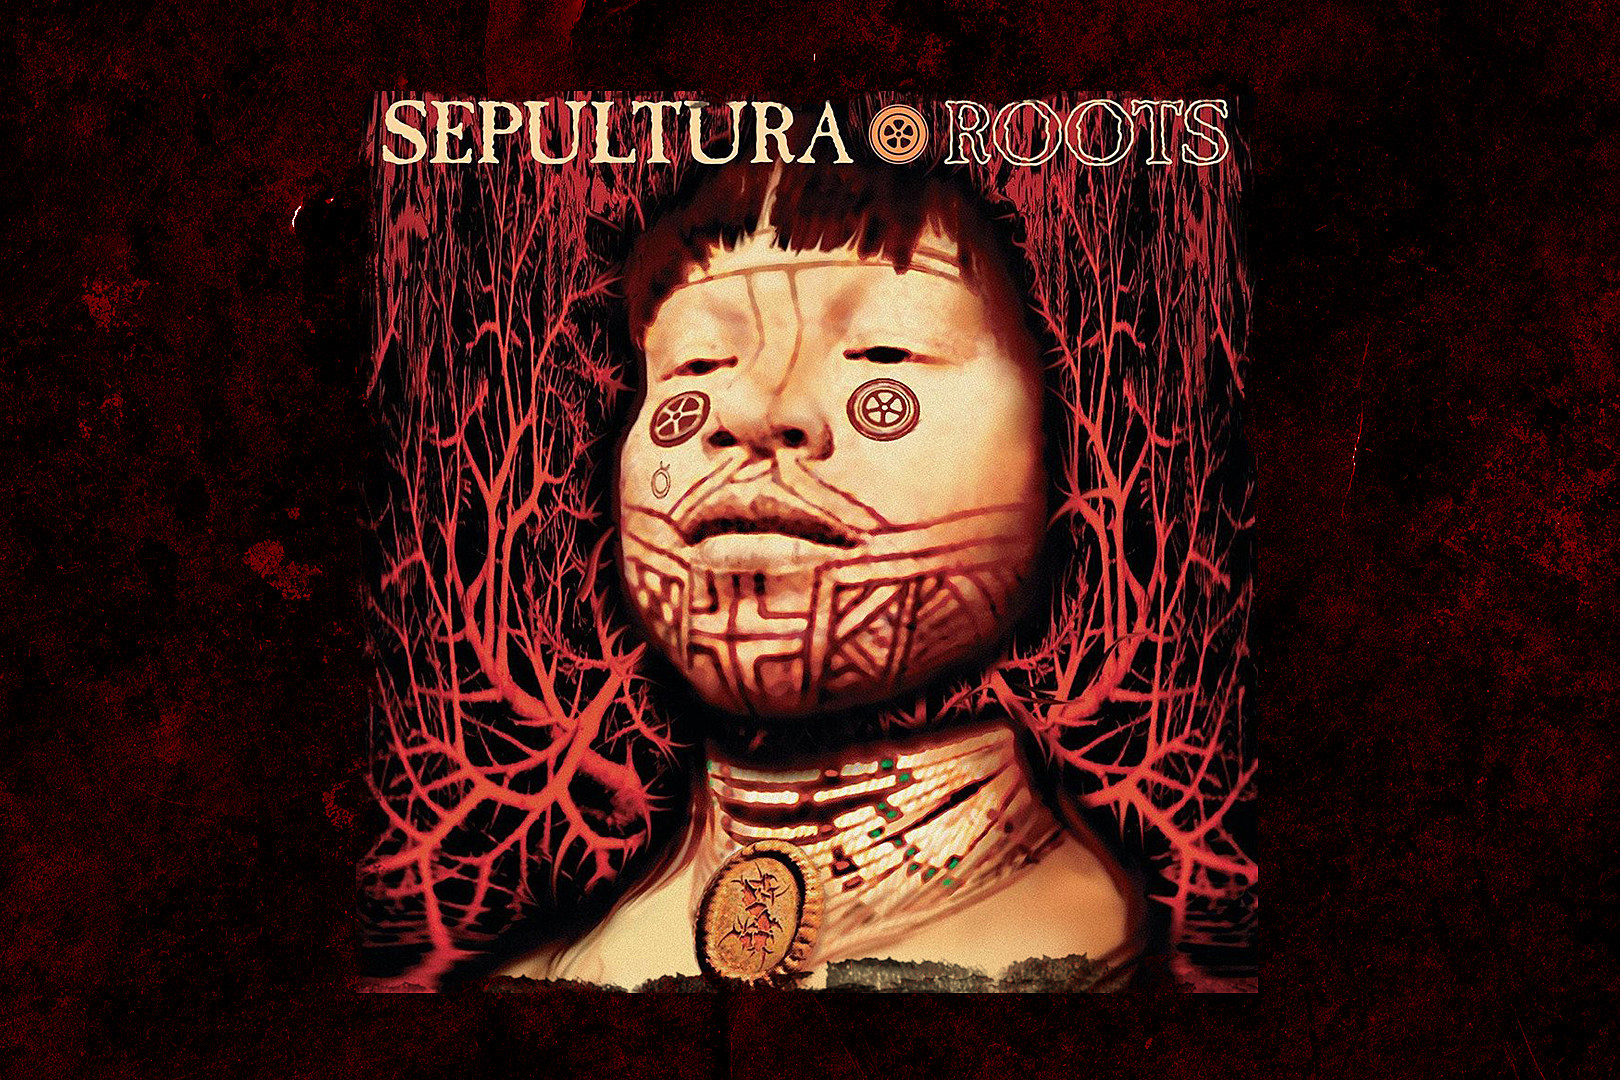 23 Years Ago: Sepultura Explored Their 'Roots'